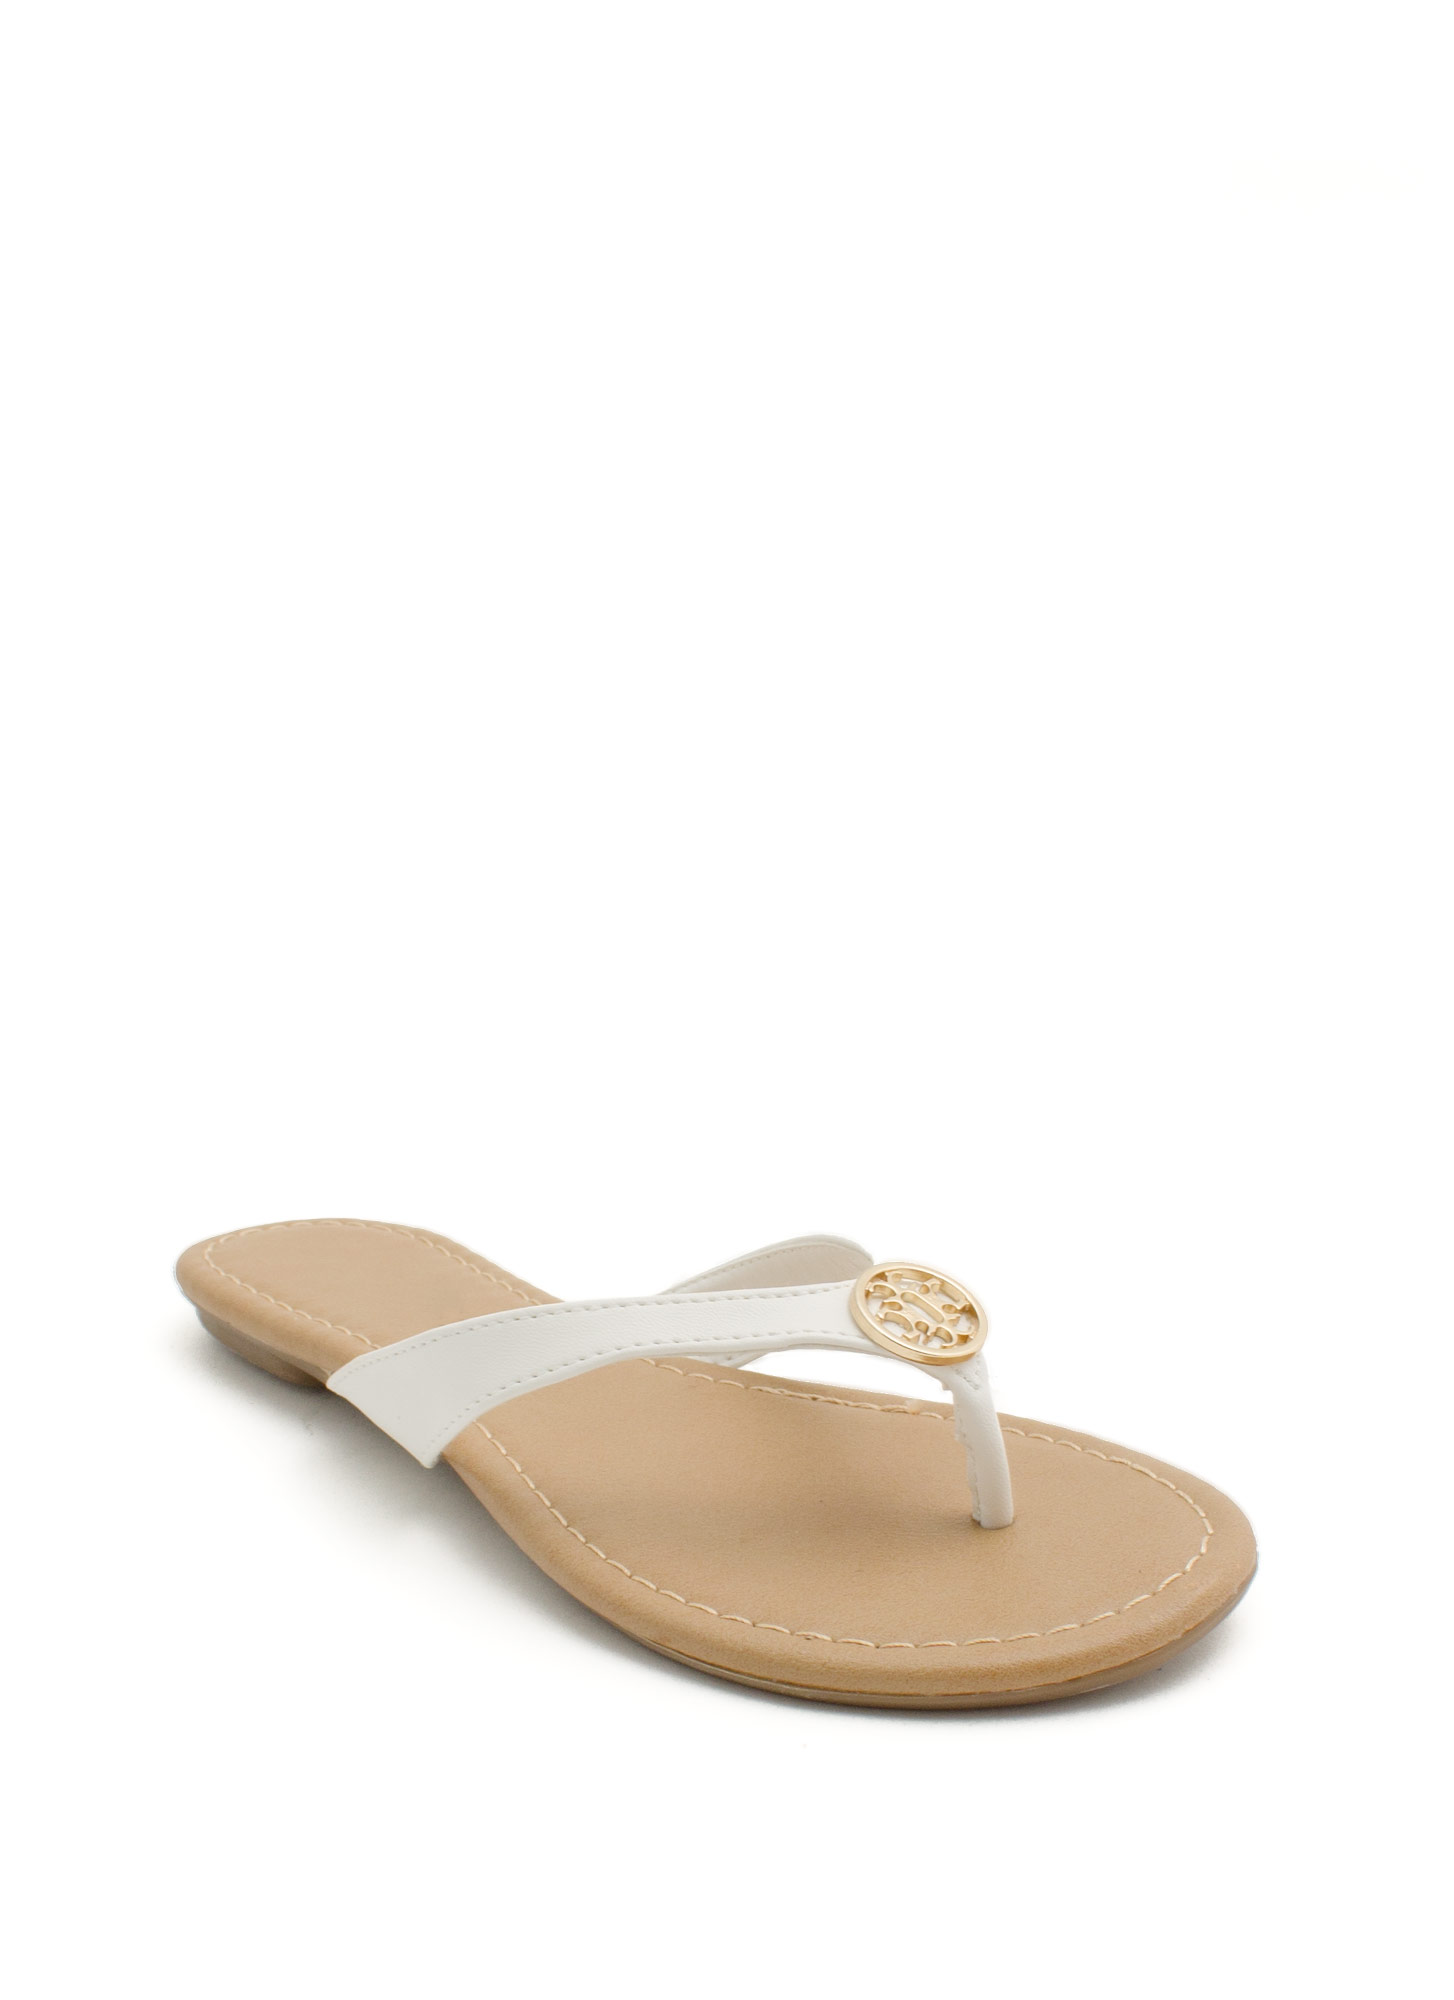 Mini Medallion Thong Sandals WHITE